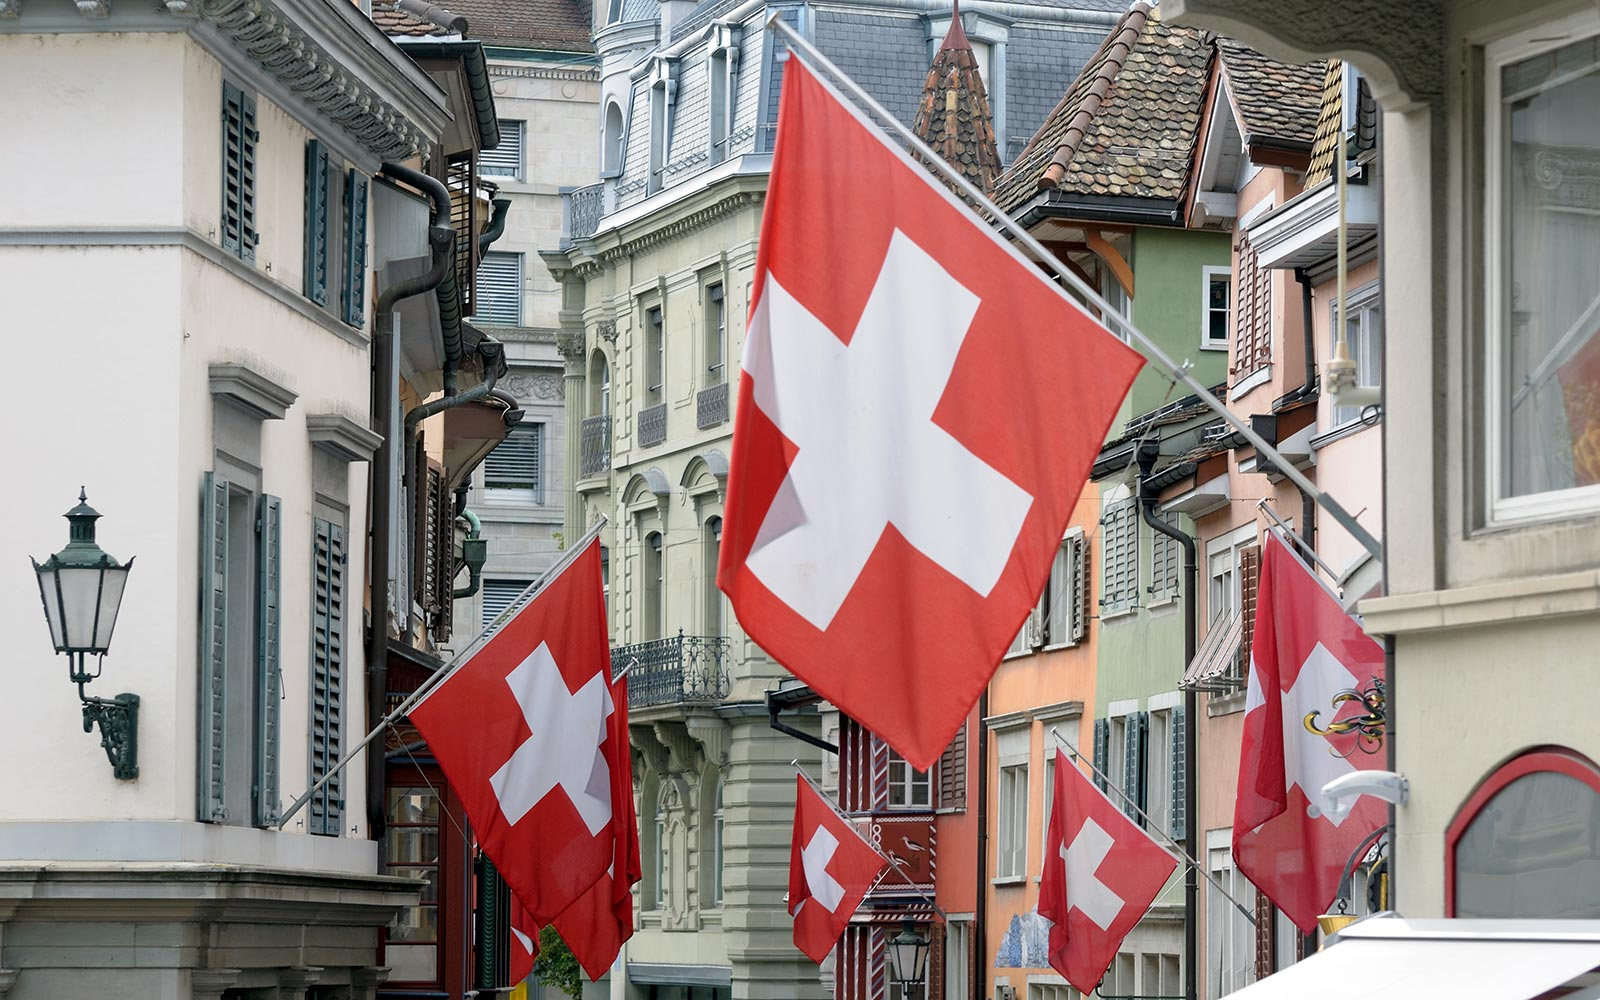 CHE, SCHWEIZ : Fahnen in der Altstadt von Zuerich